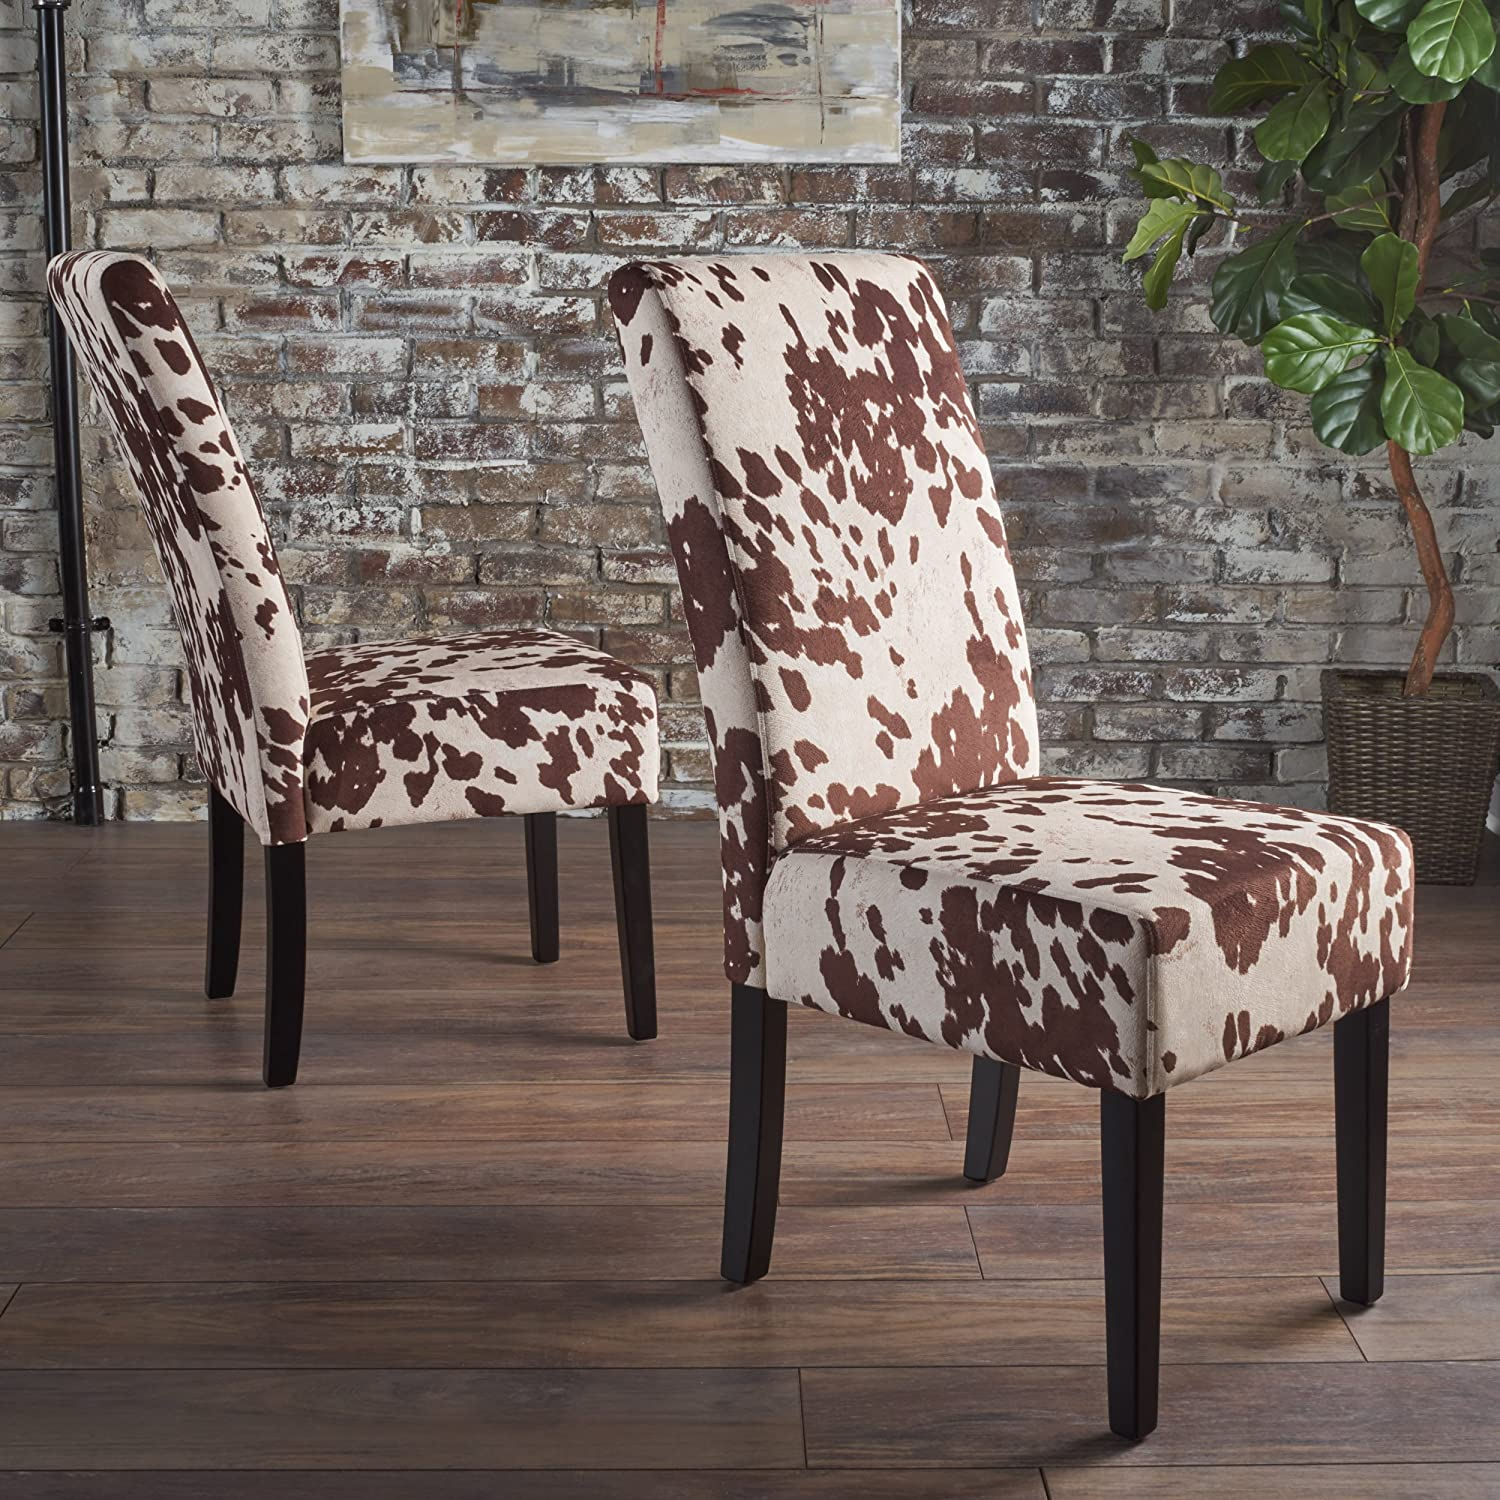 Christopher Knight Home 301838 Pertica Dining Chair Set, Milk Cow/Dark Brown